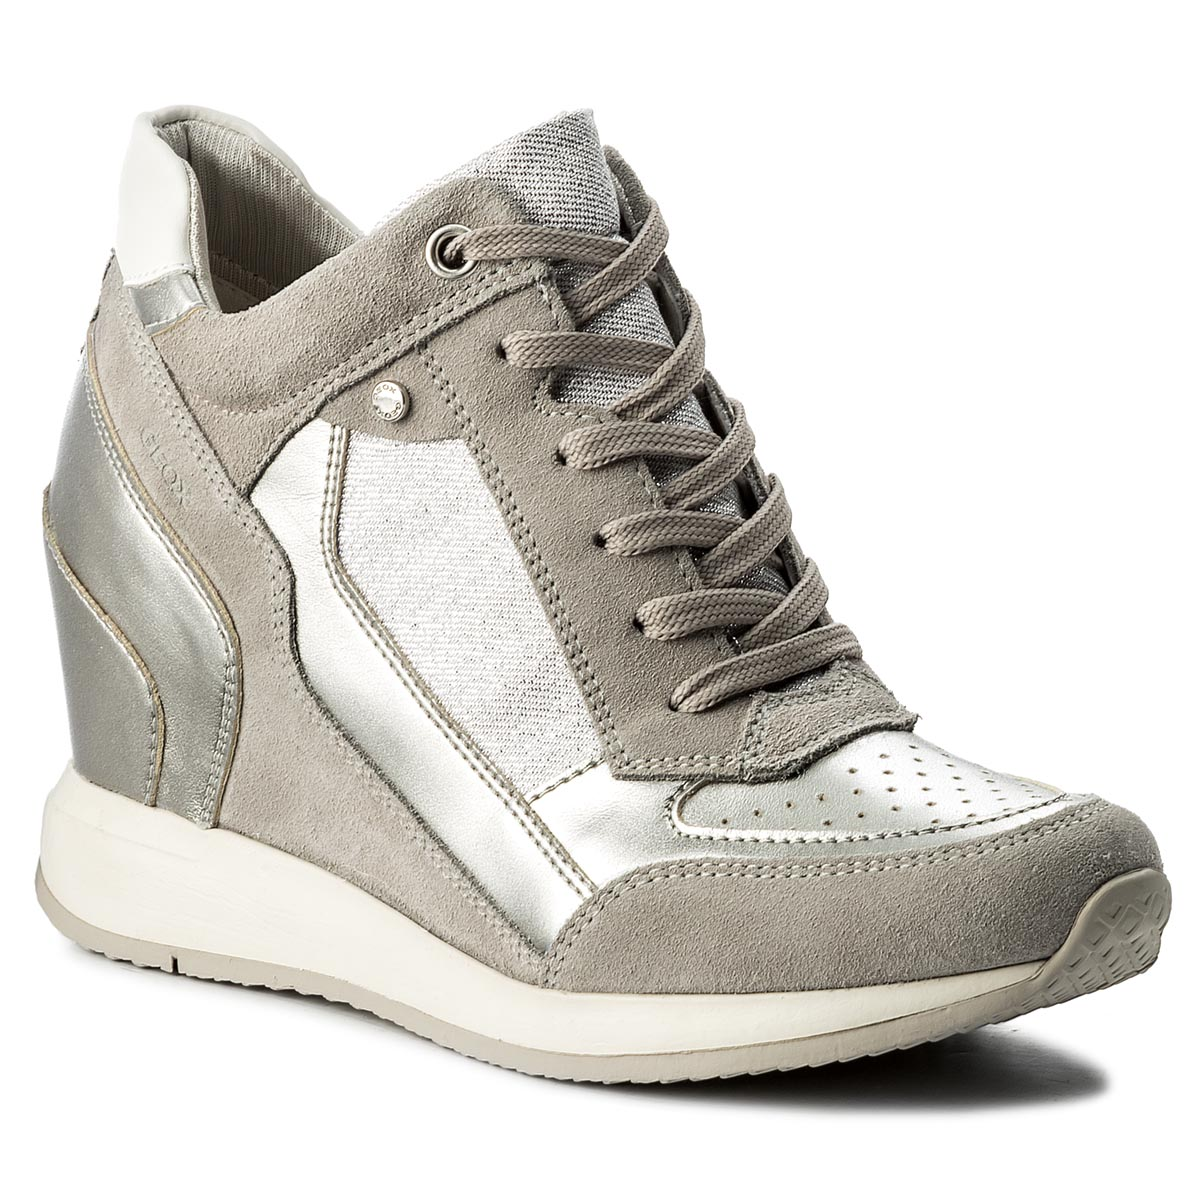 Sneakers GEOX - D Nydame A D540QA 022AS C1355 Lt Grey/Silver